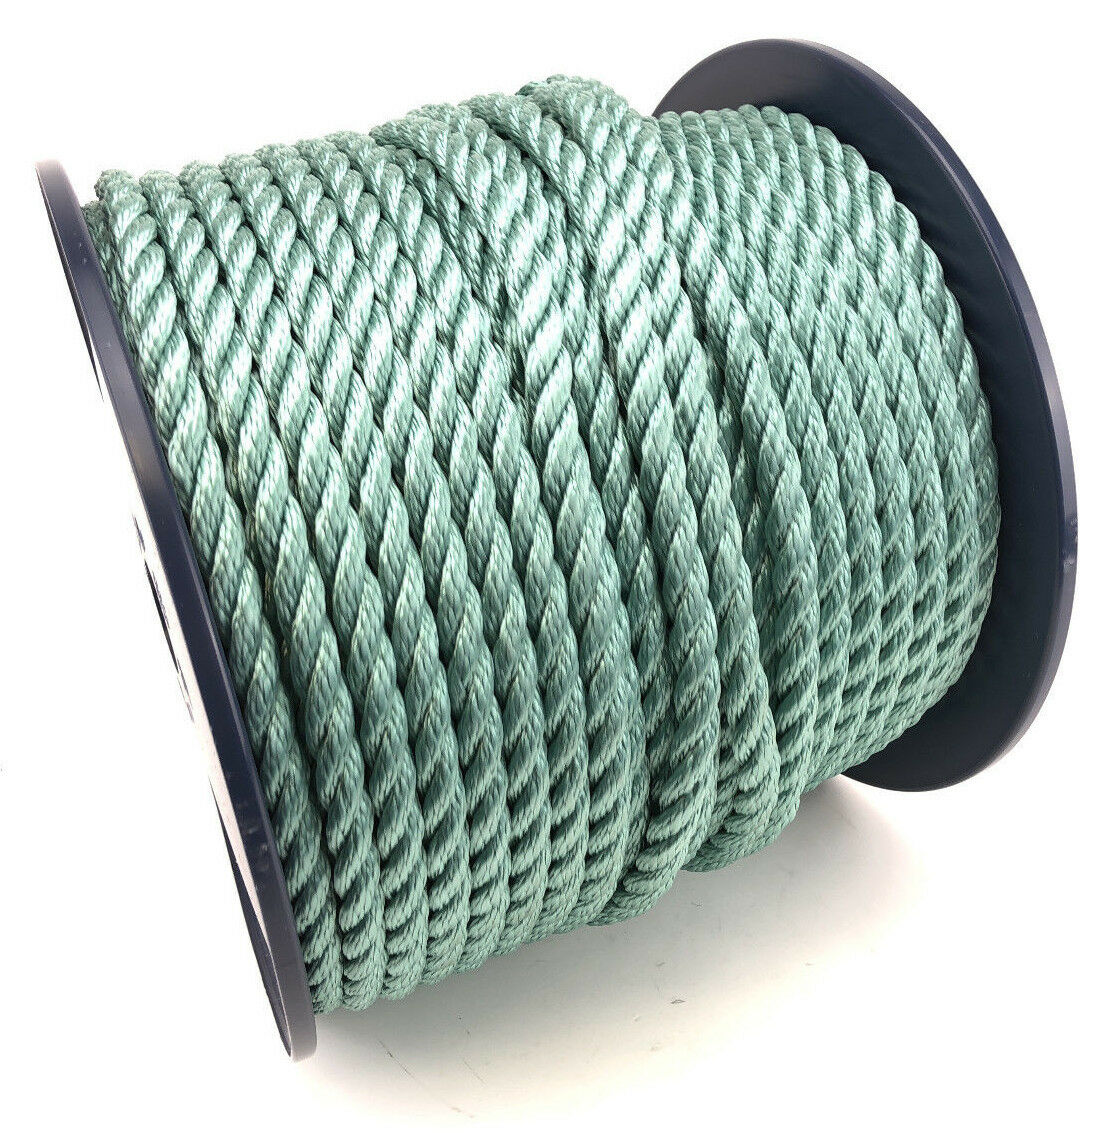 3 Strand Teal Multifilament 6mm (Floating Rope) x 100m Reel Boats Yachts